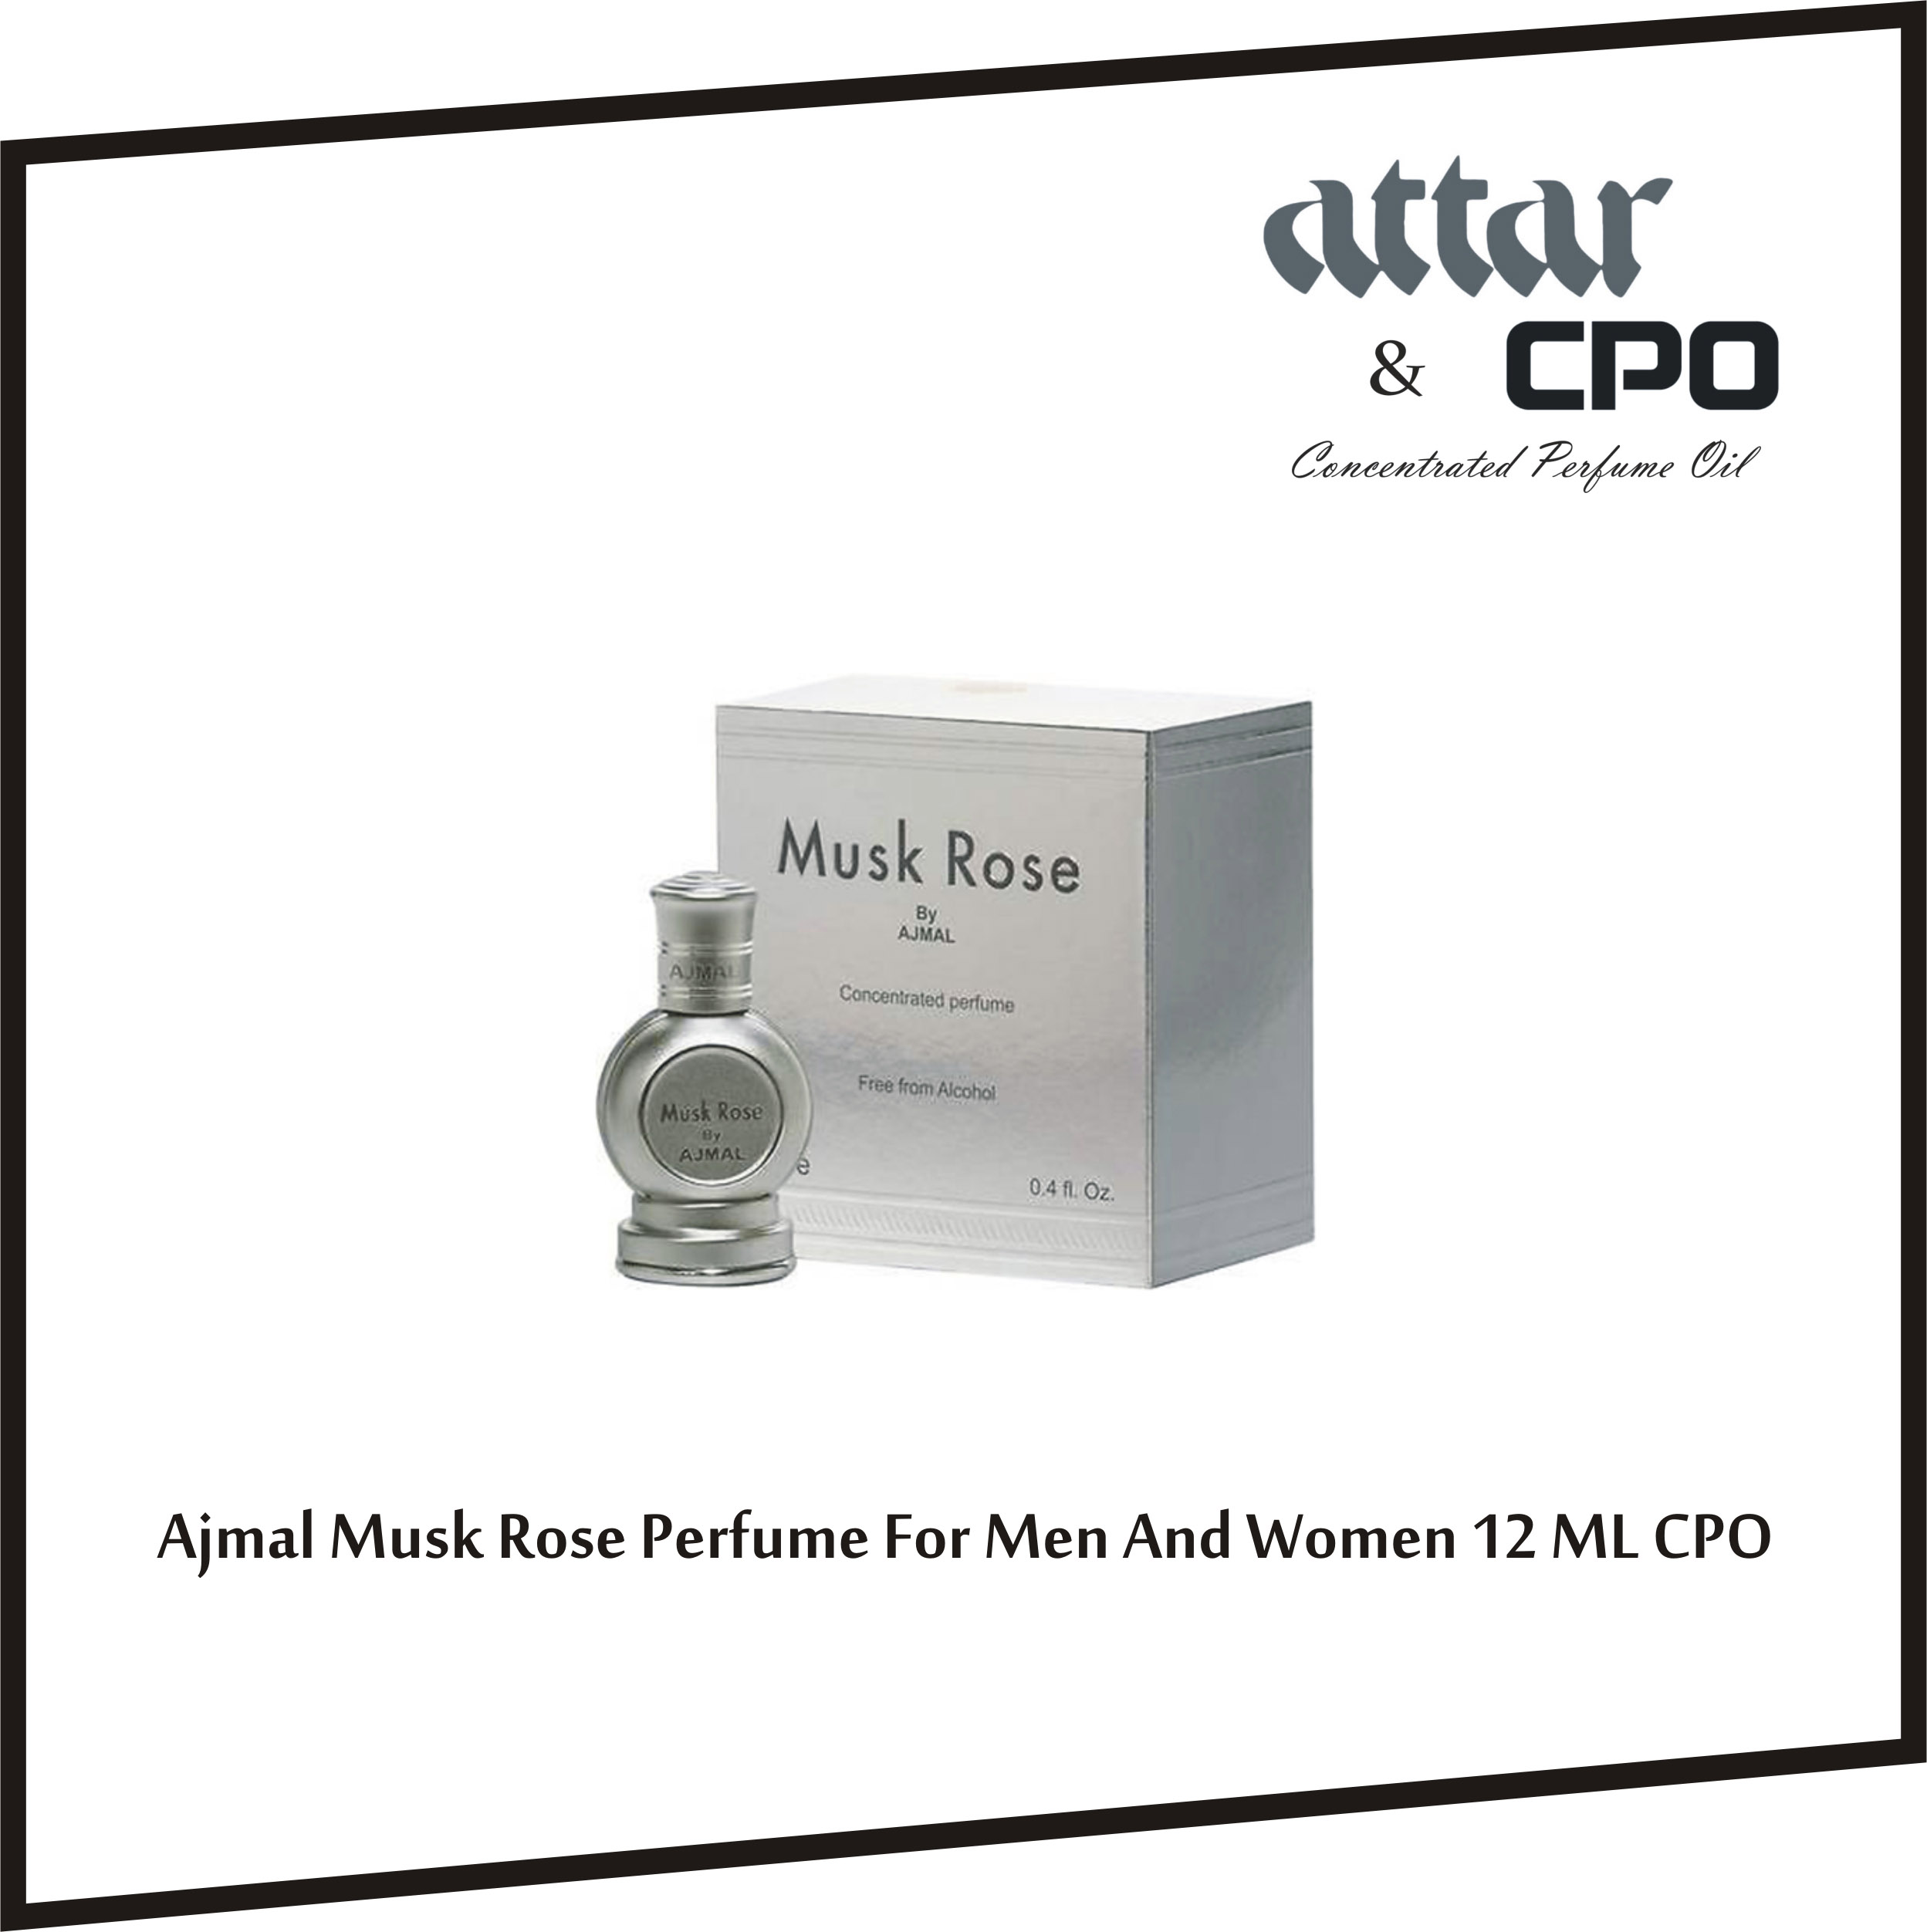 ajmal-musk-rose-perfume-for-men-and-women